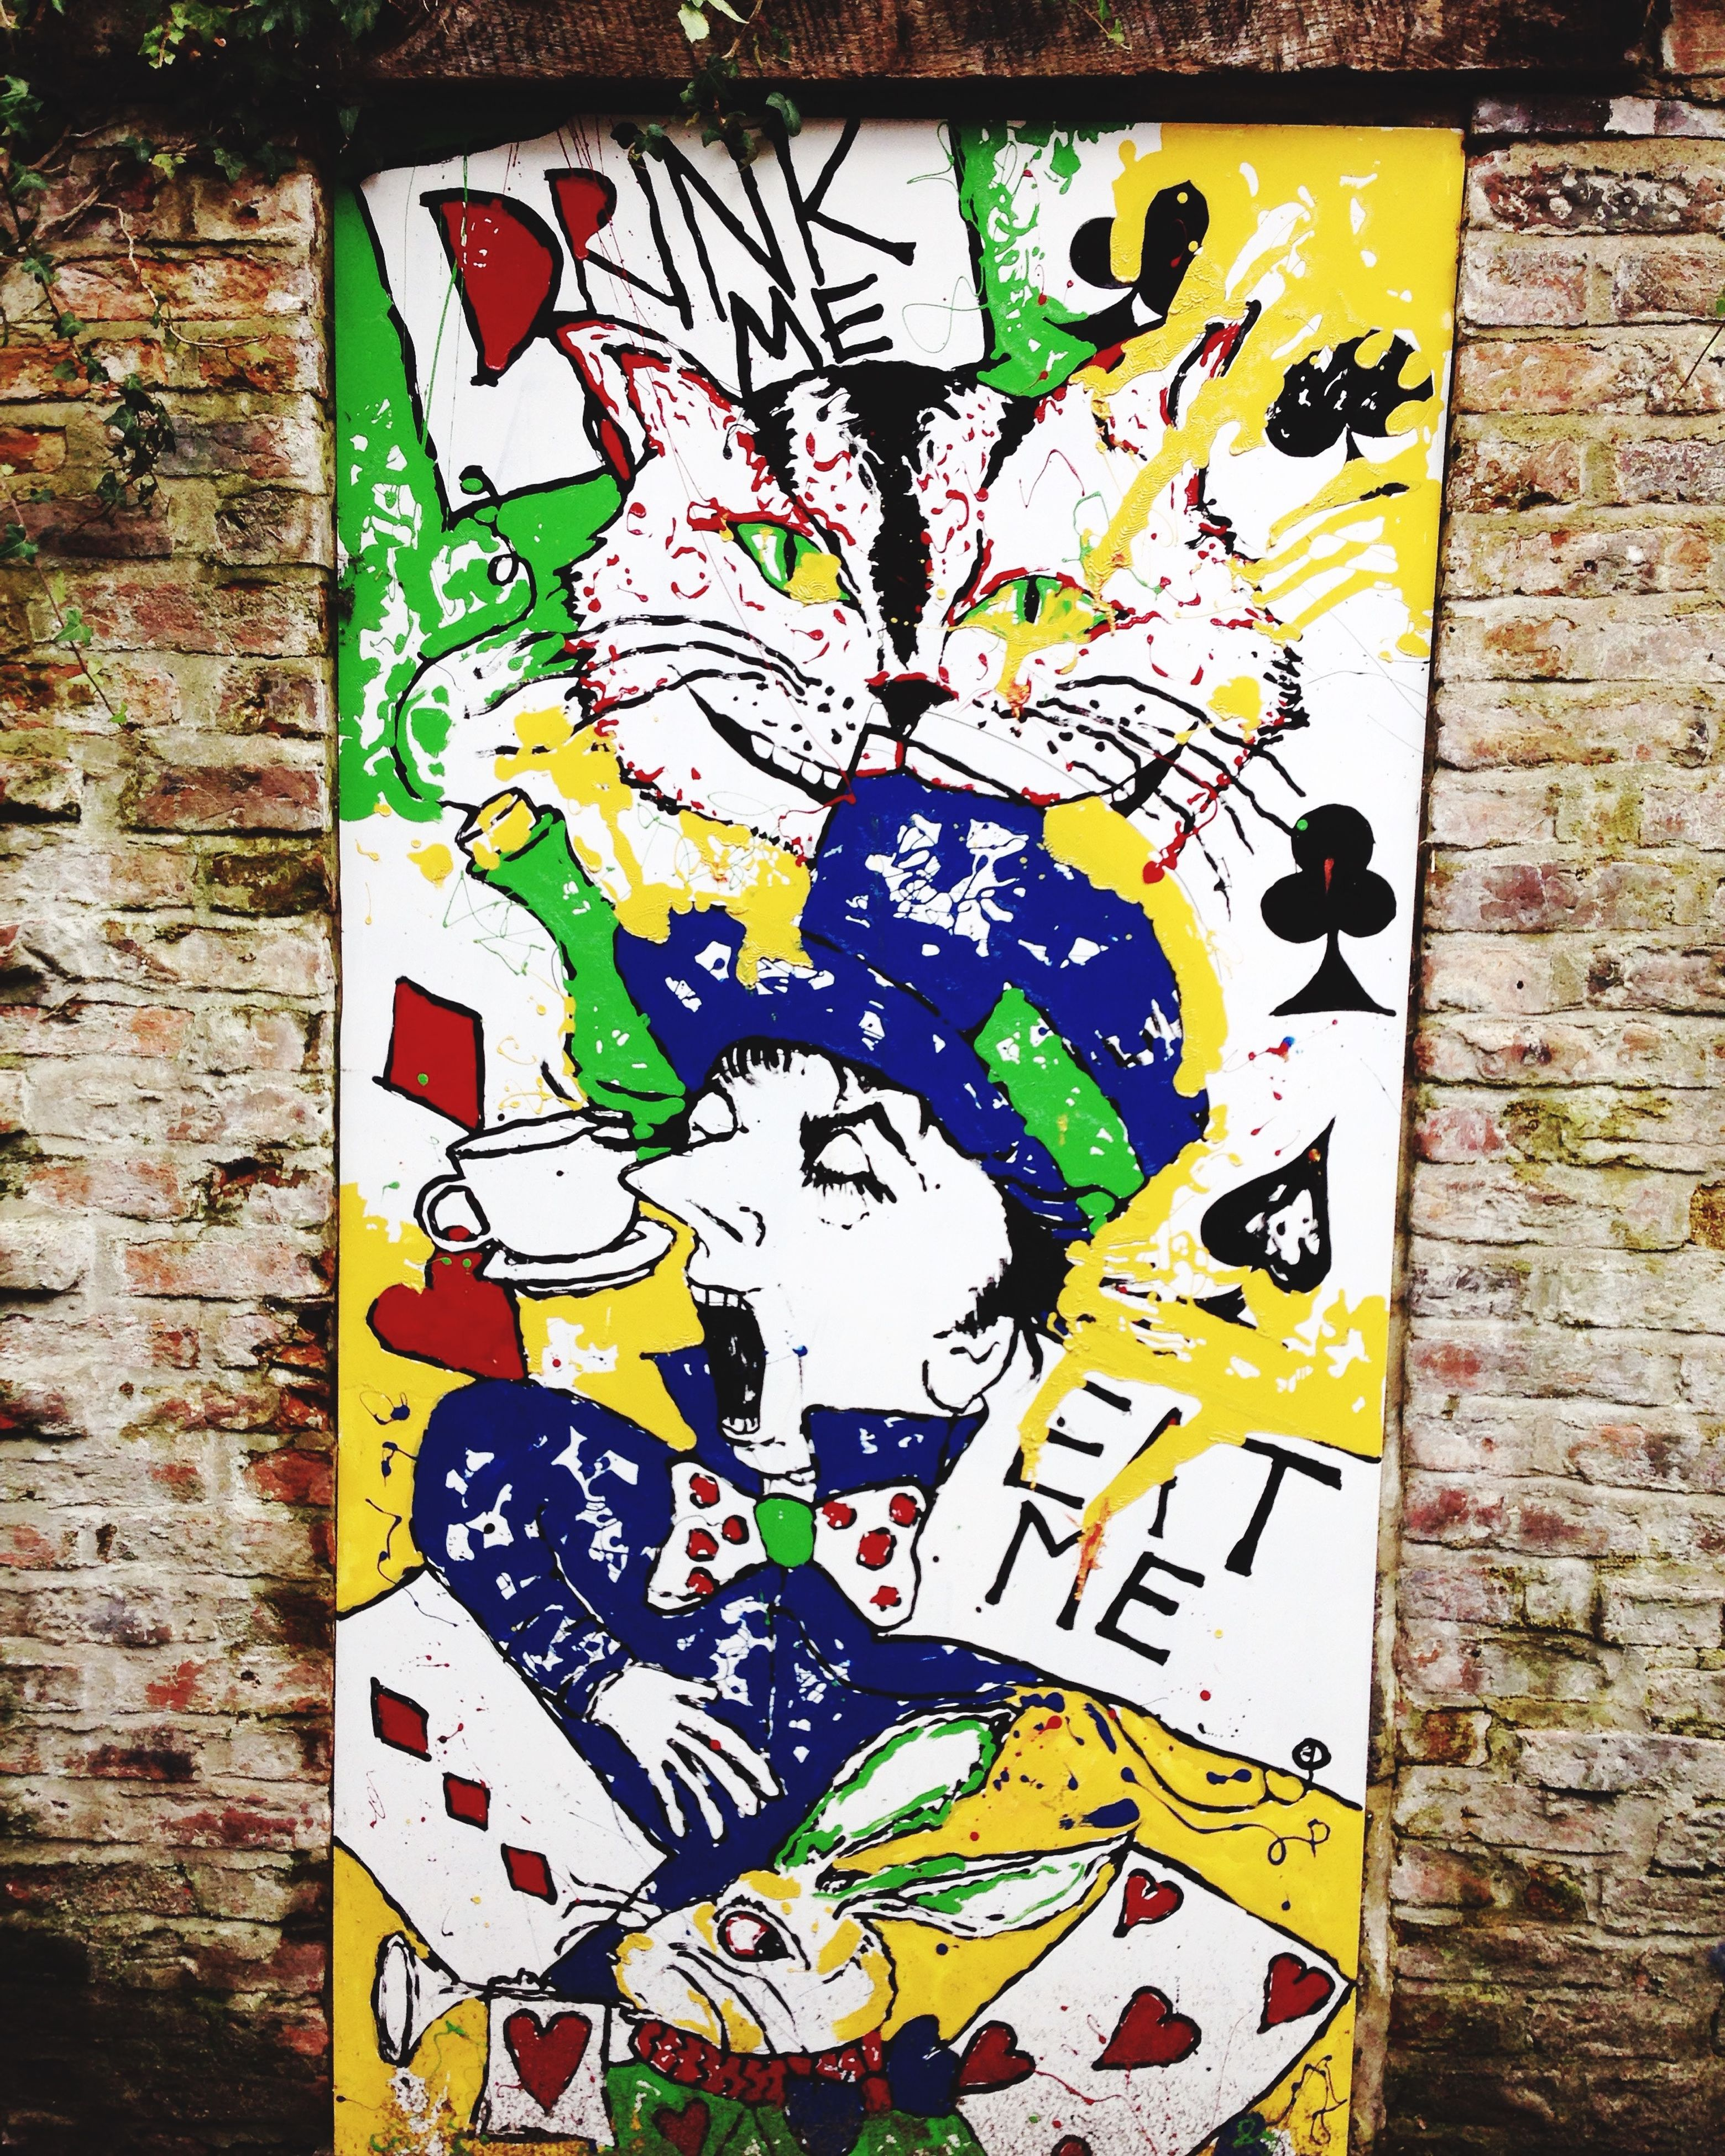 graffiti, art, wall - building feature, art and craft, creativity, multi colored, built structure, architecture, text, wall, street art, brick wall, human representation, communication, building exterior, western script, painting, yellow, mural